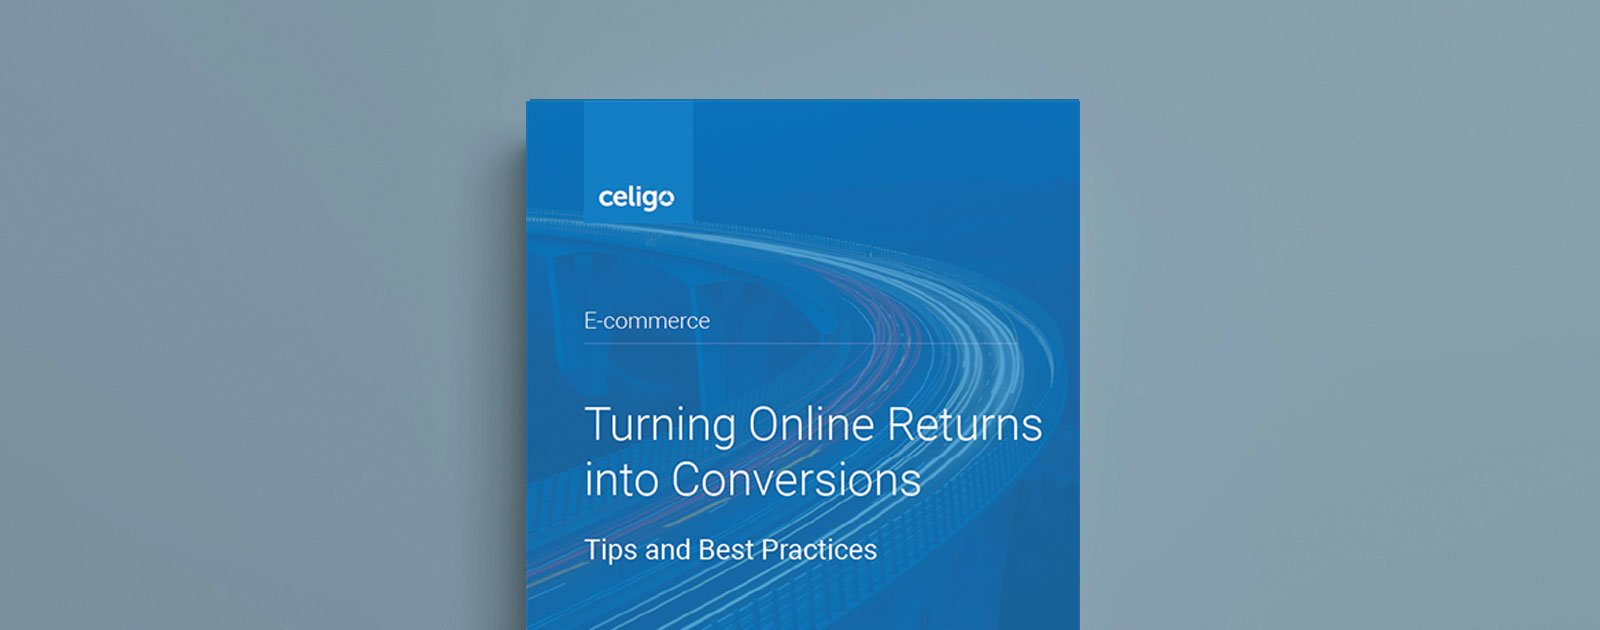 Turning Online Returns into Conversions: Tips and Best Practices